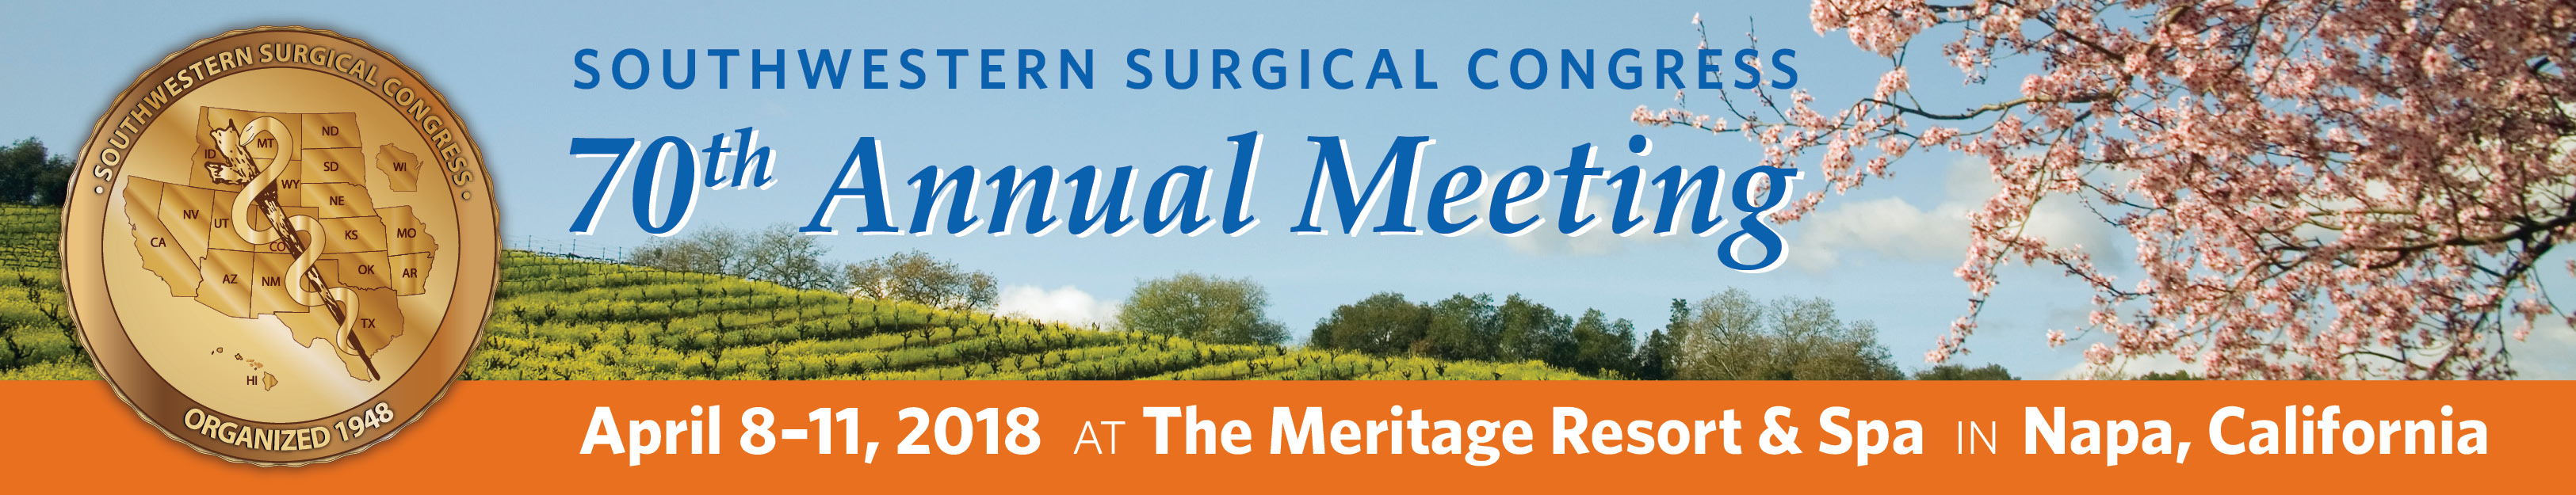 SWSC 2018 Annual Meeting